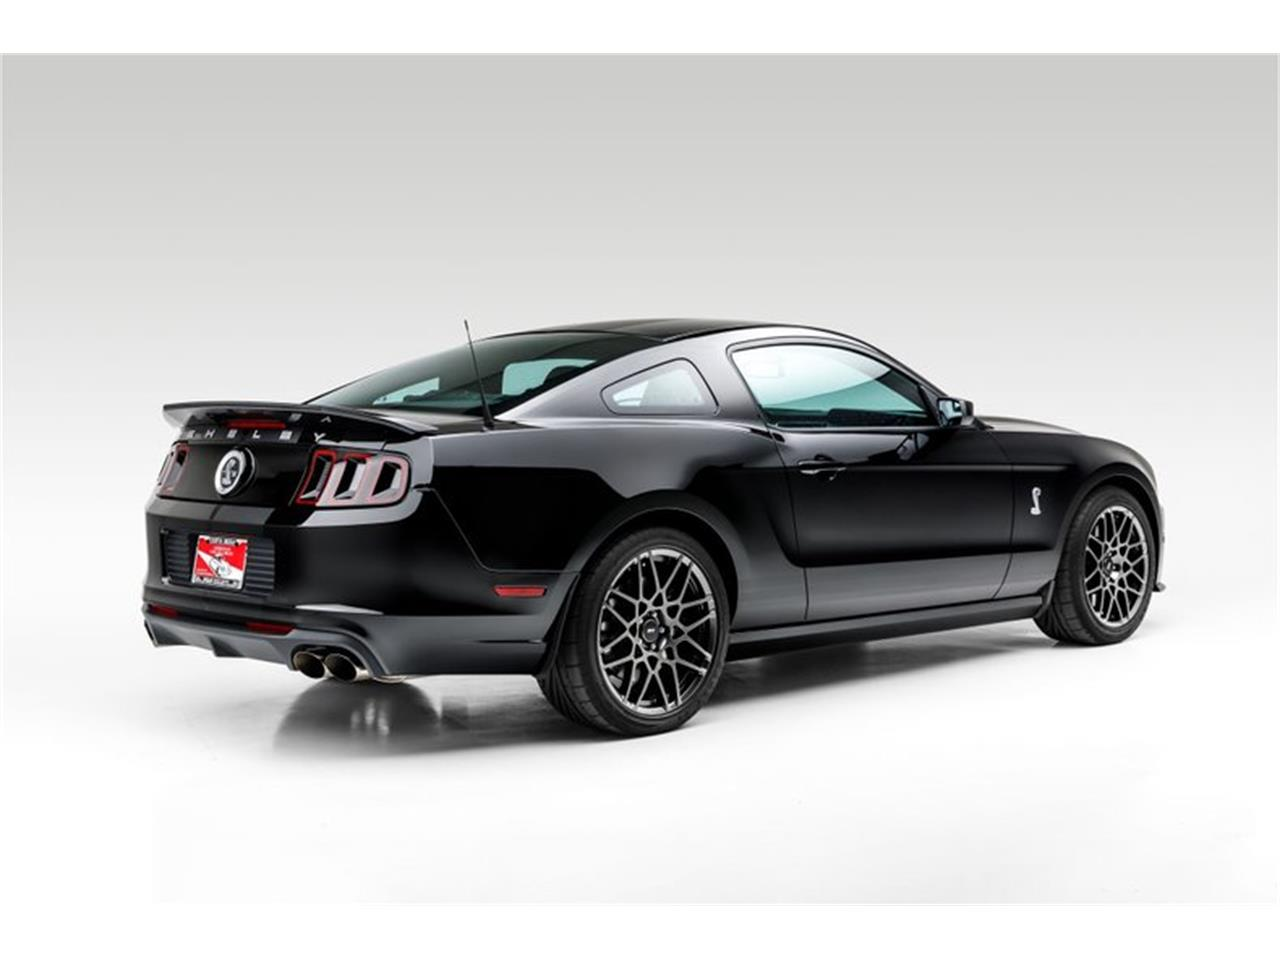 2014 Ford Mustang (CC-1413497) for sale in Costa Mesa, California